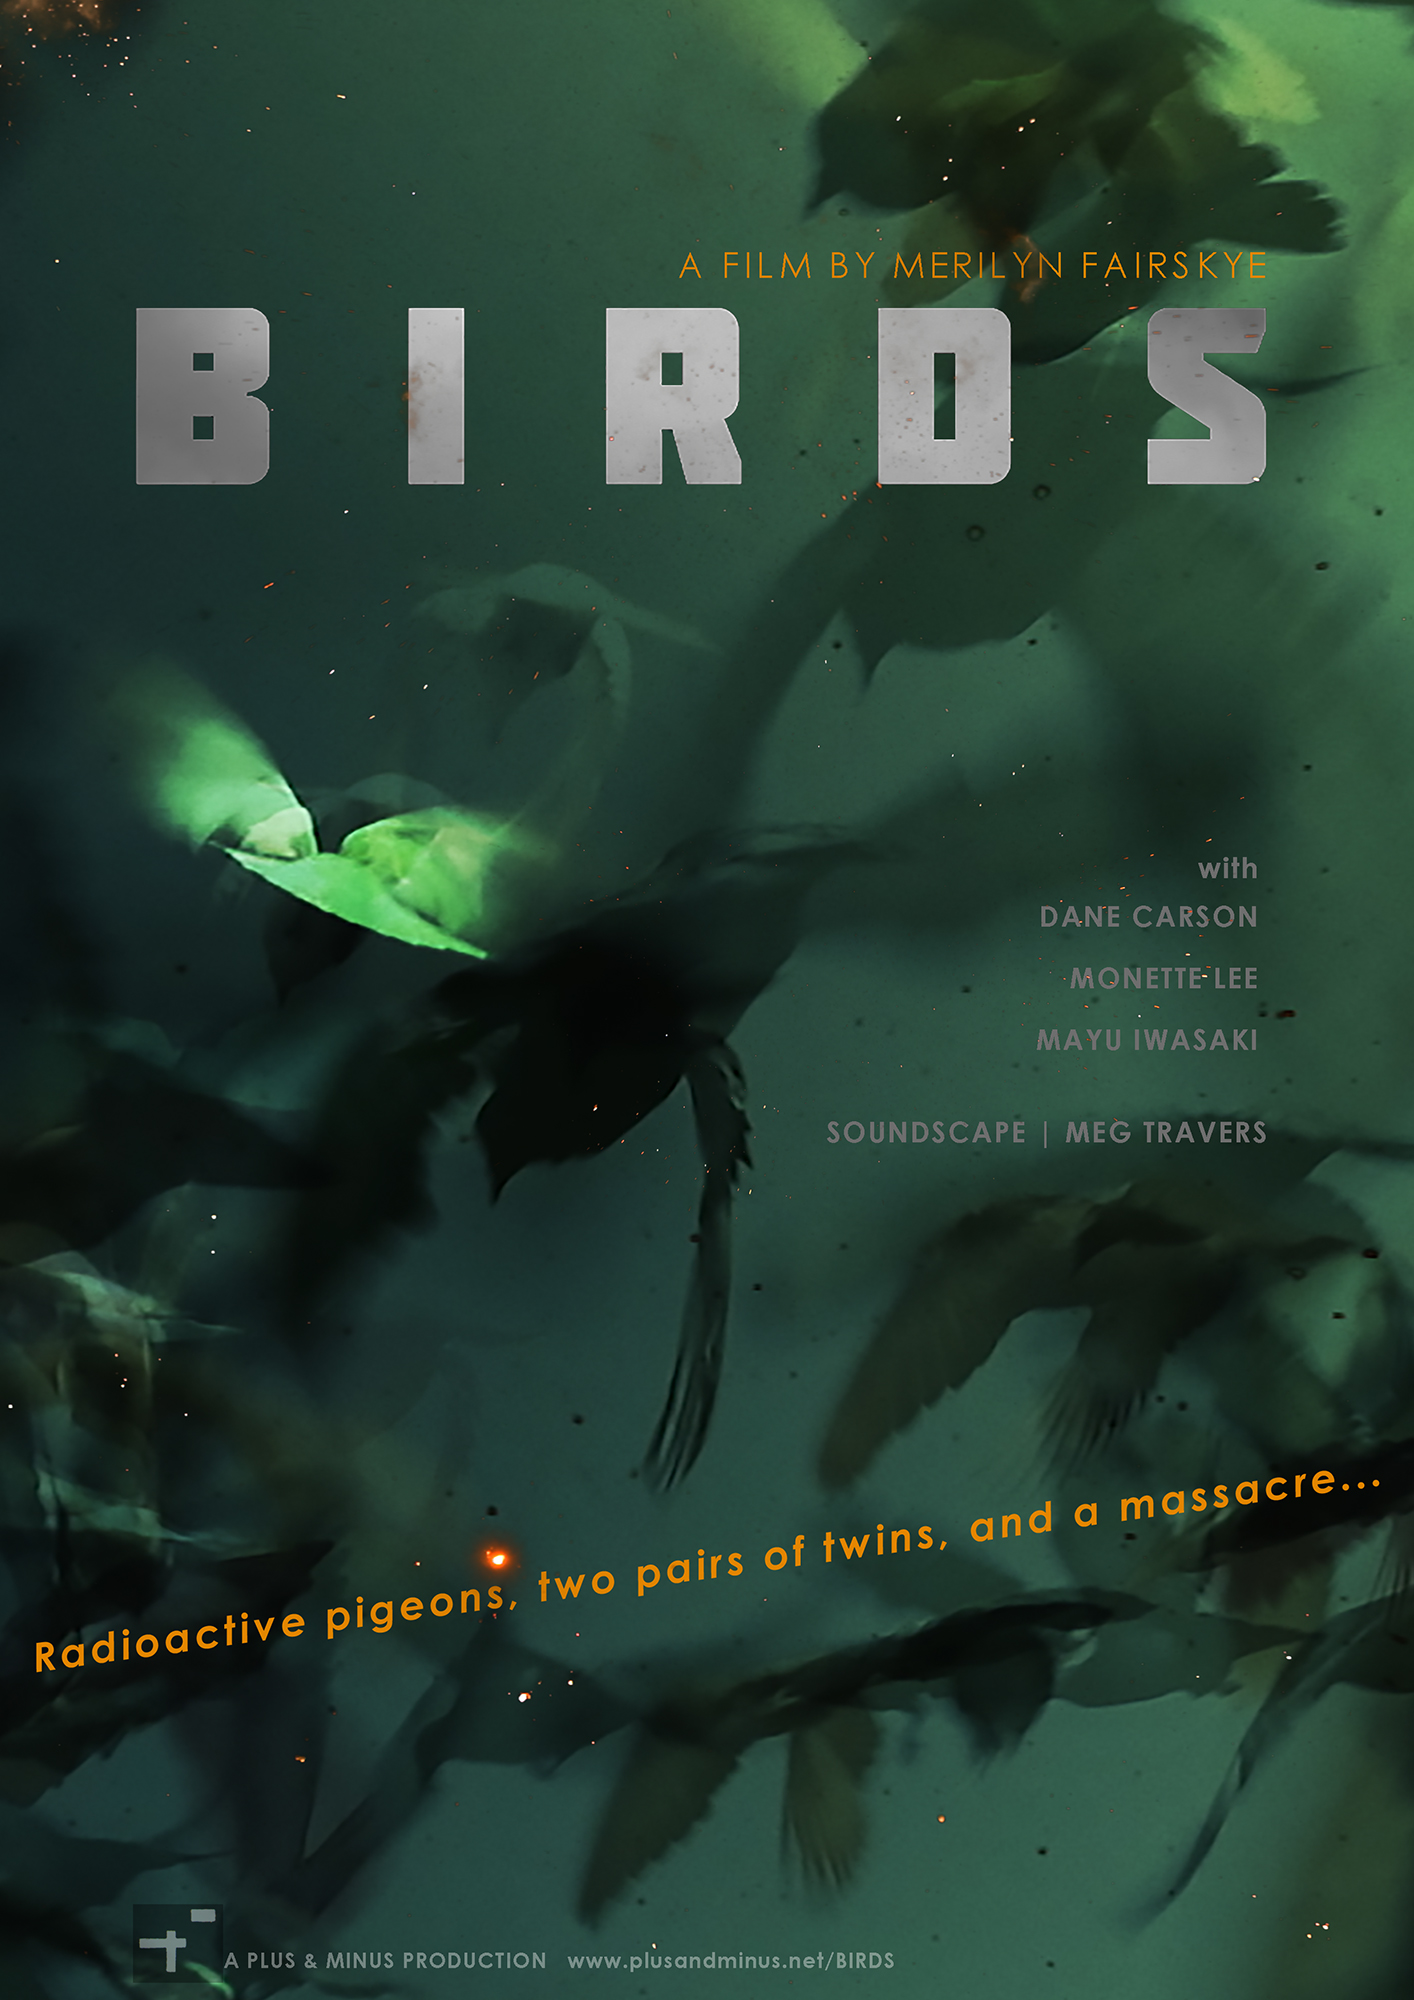 """Poster for """"BIRDS"""" film by Merilyn Fairskye with image of distorted pigeons on blue background"""